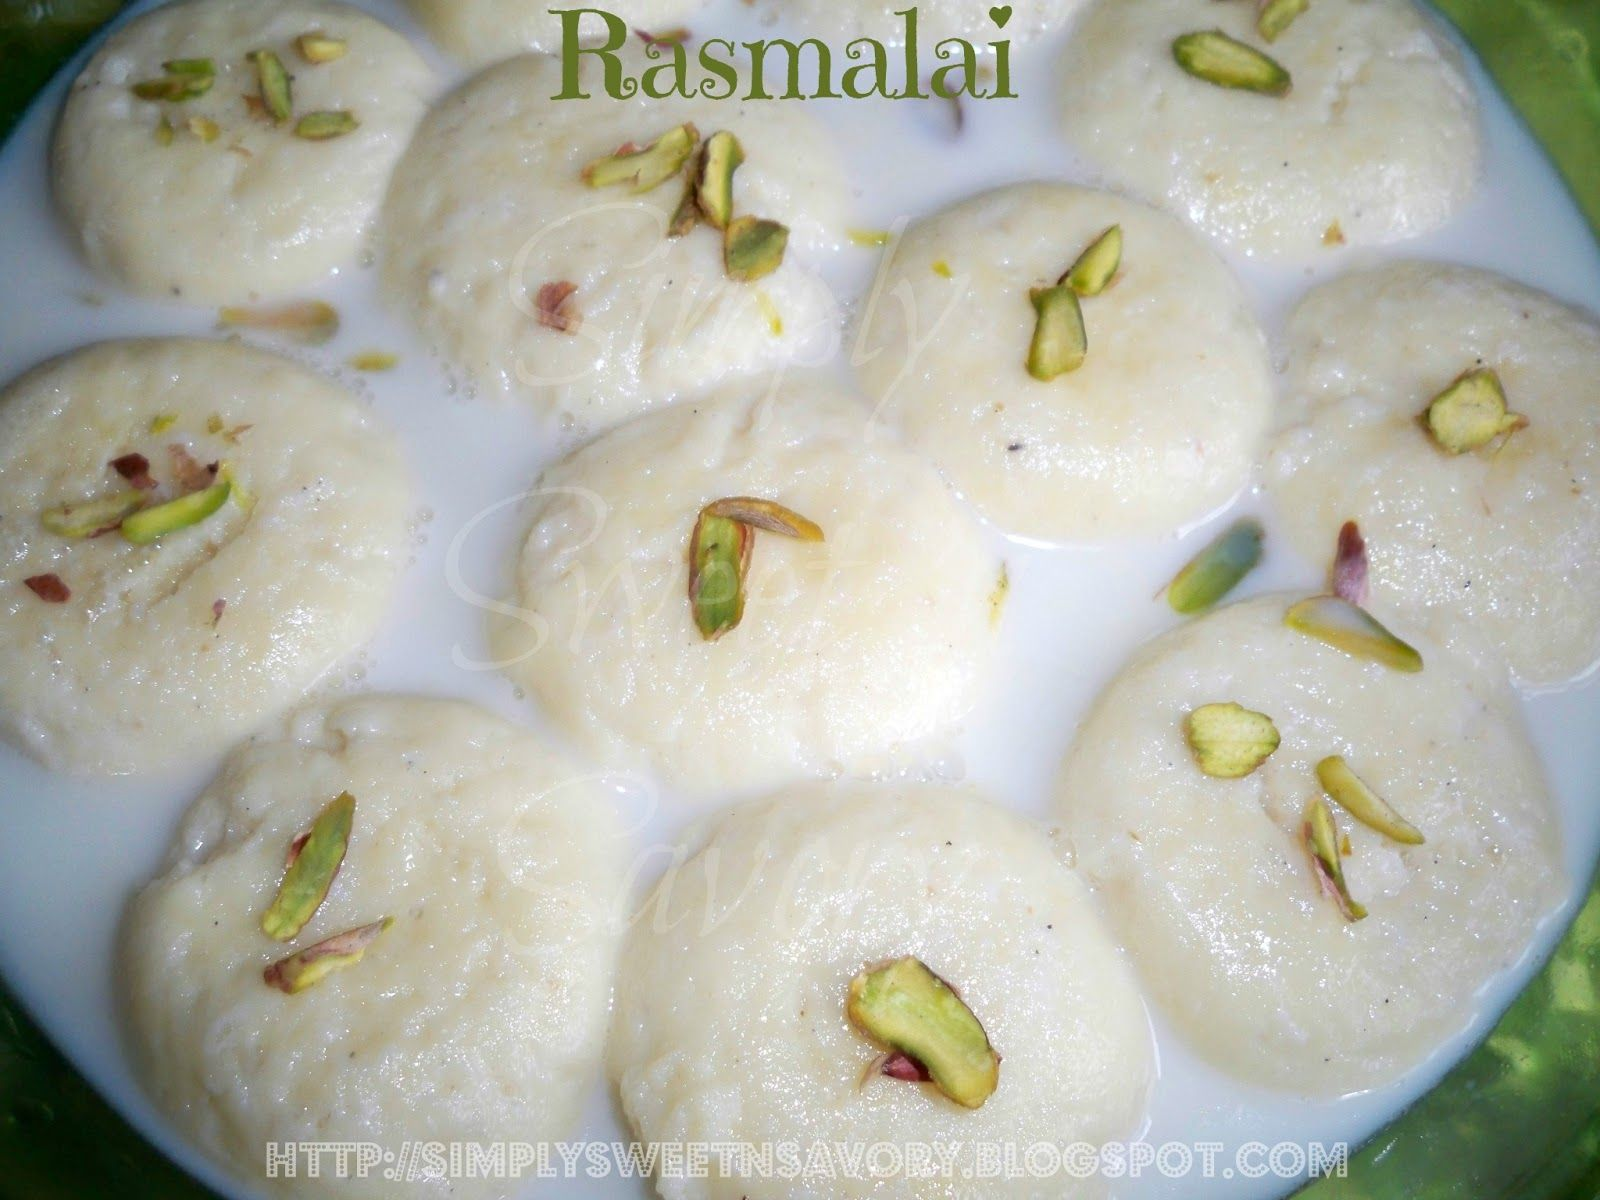 Simply Sweet N Savory Rasmalai Or Ras Malai Powdered Milk Balls In Sweetened Milk Sweet Dishes Recipes Milk Powder Recipe Cooking Recipes Desserts